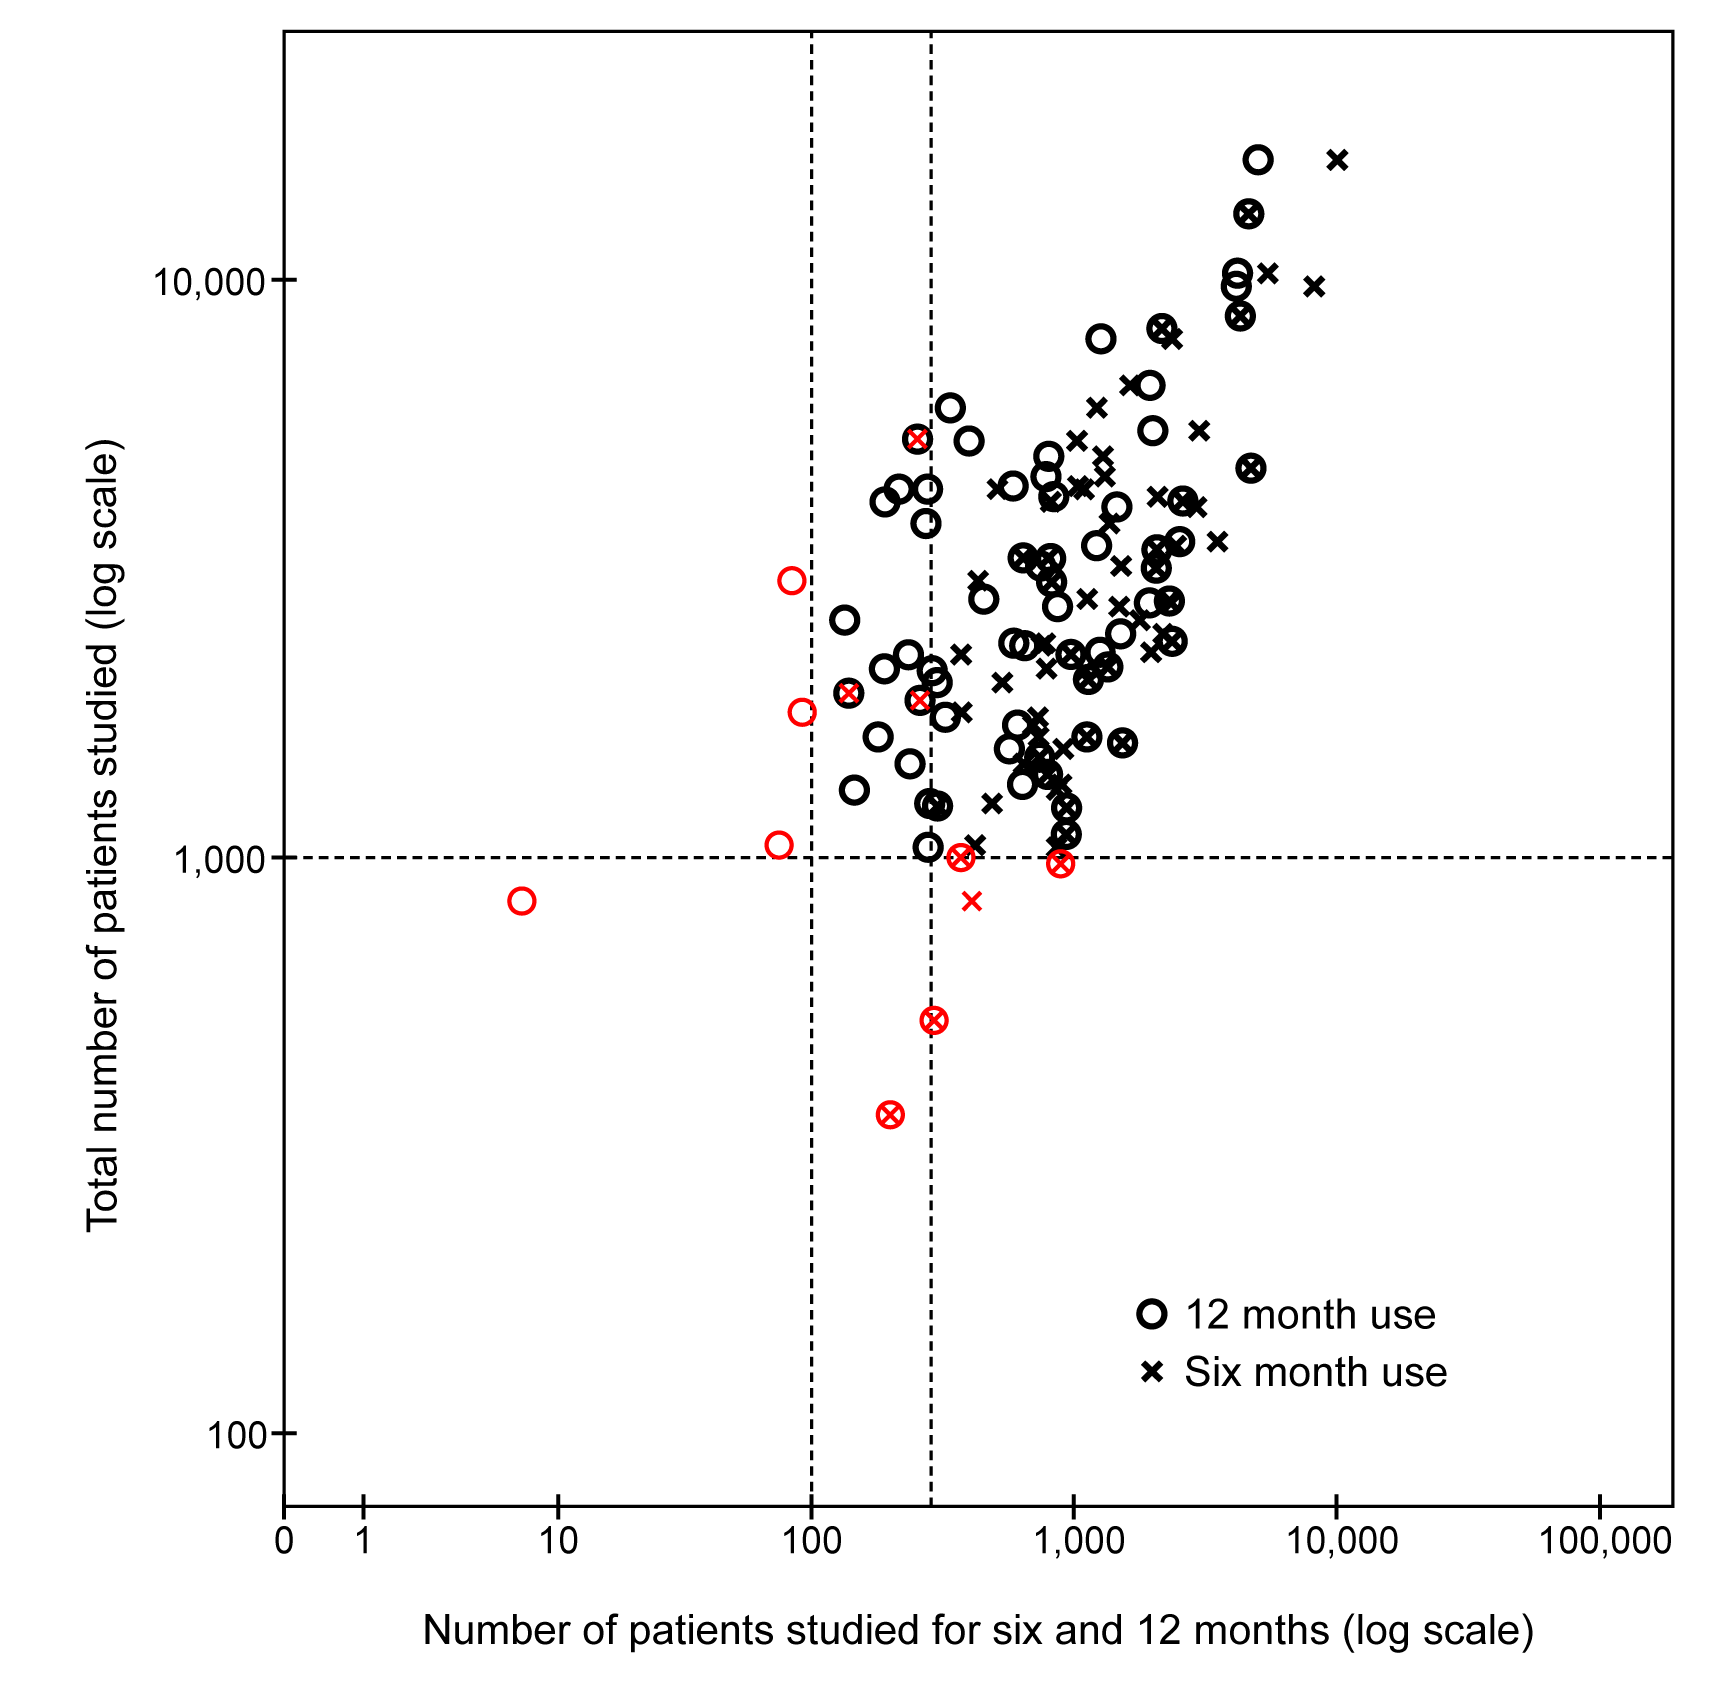 Scatterplot displaying the total number of patients studied before approval plotted against the number of patients studied long term (for 6 and 12 mo) for chronic medication.